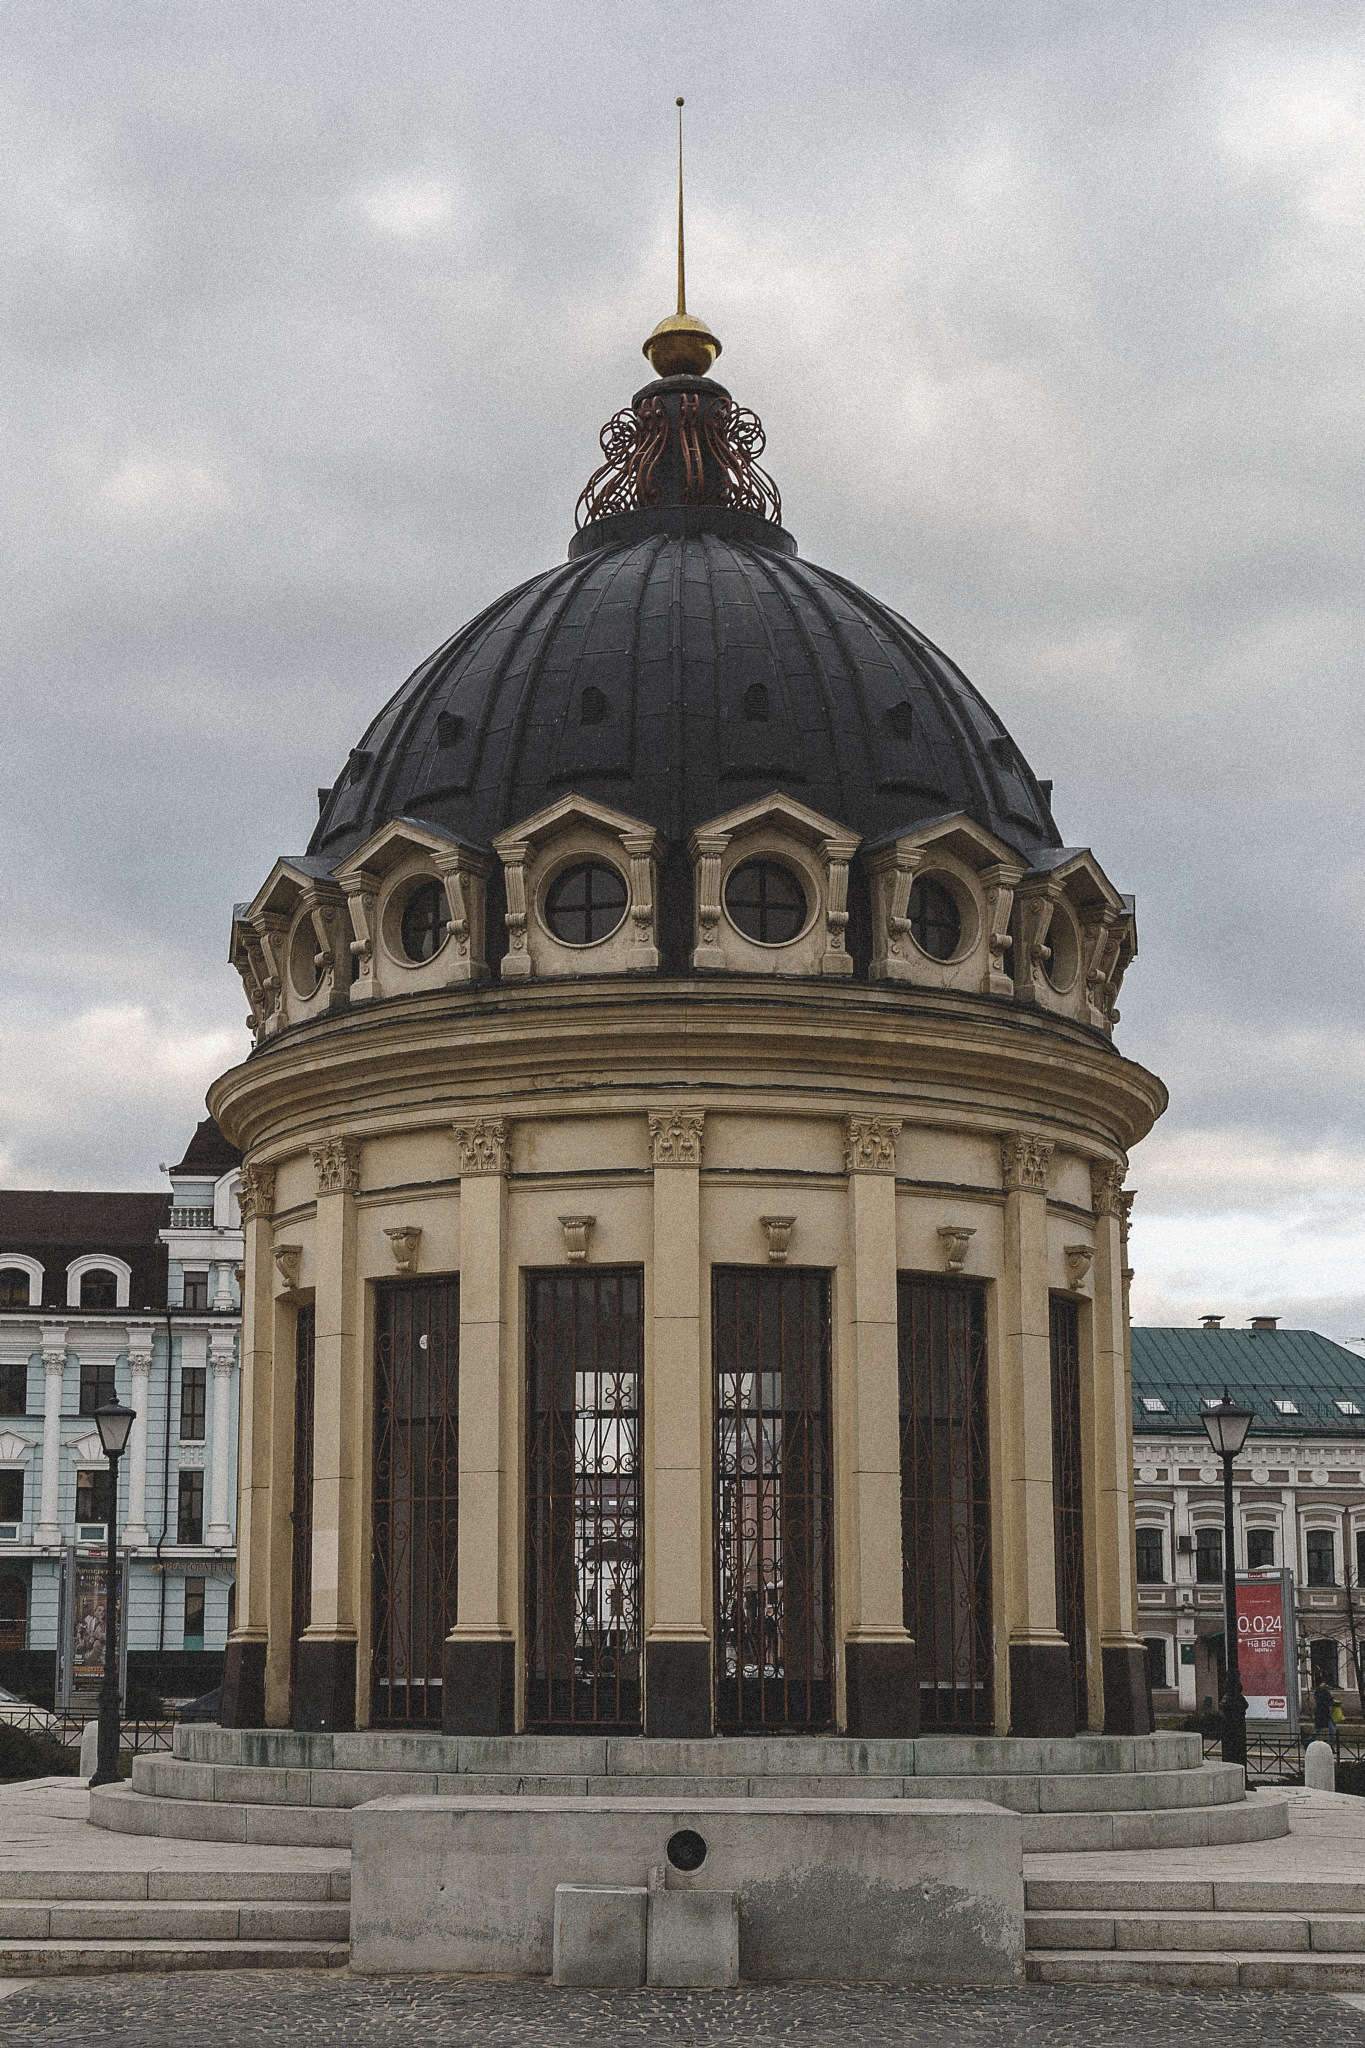 Rotunda on the Peterburgskaya Street by skboris